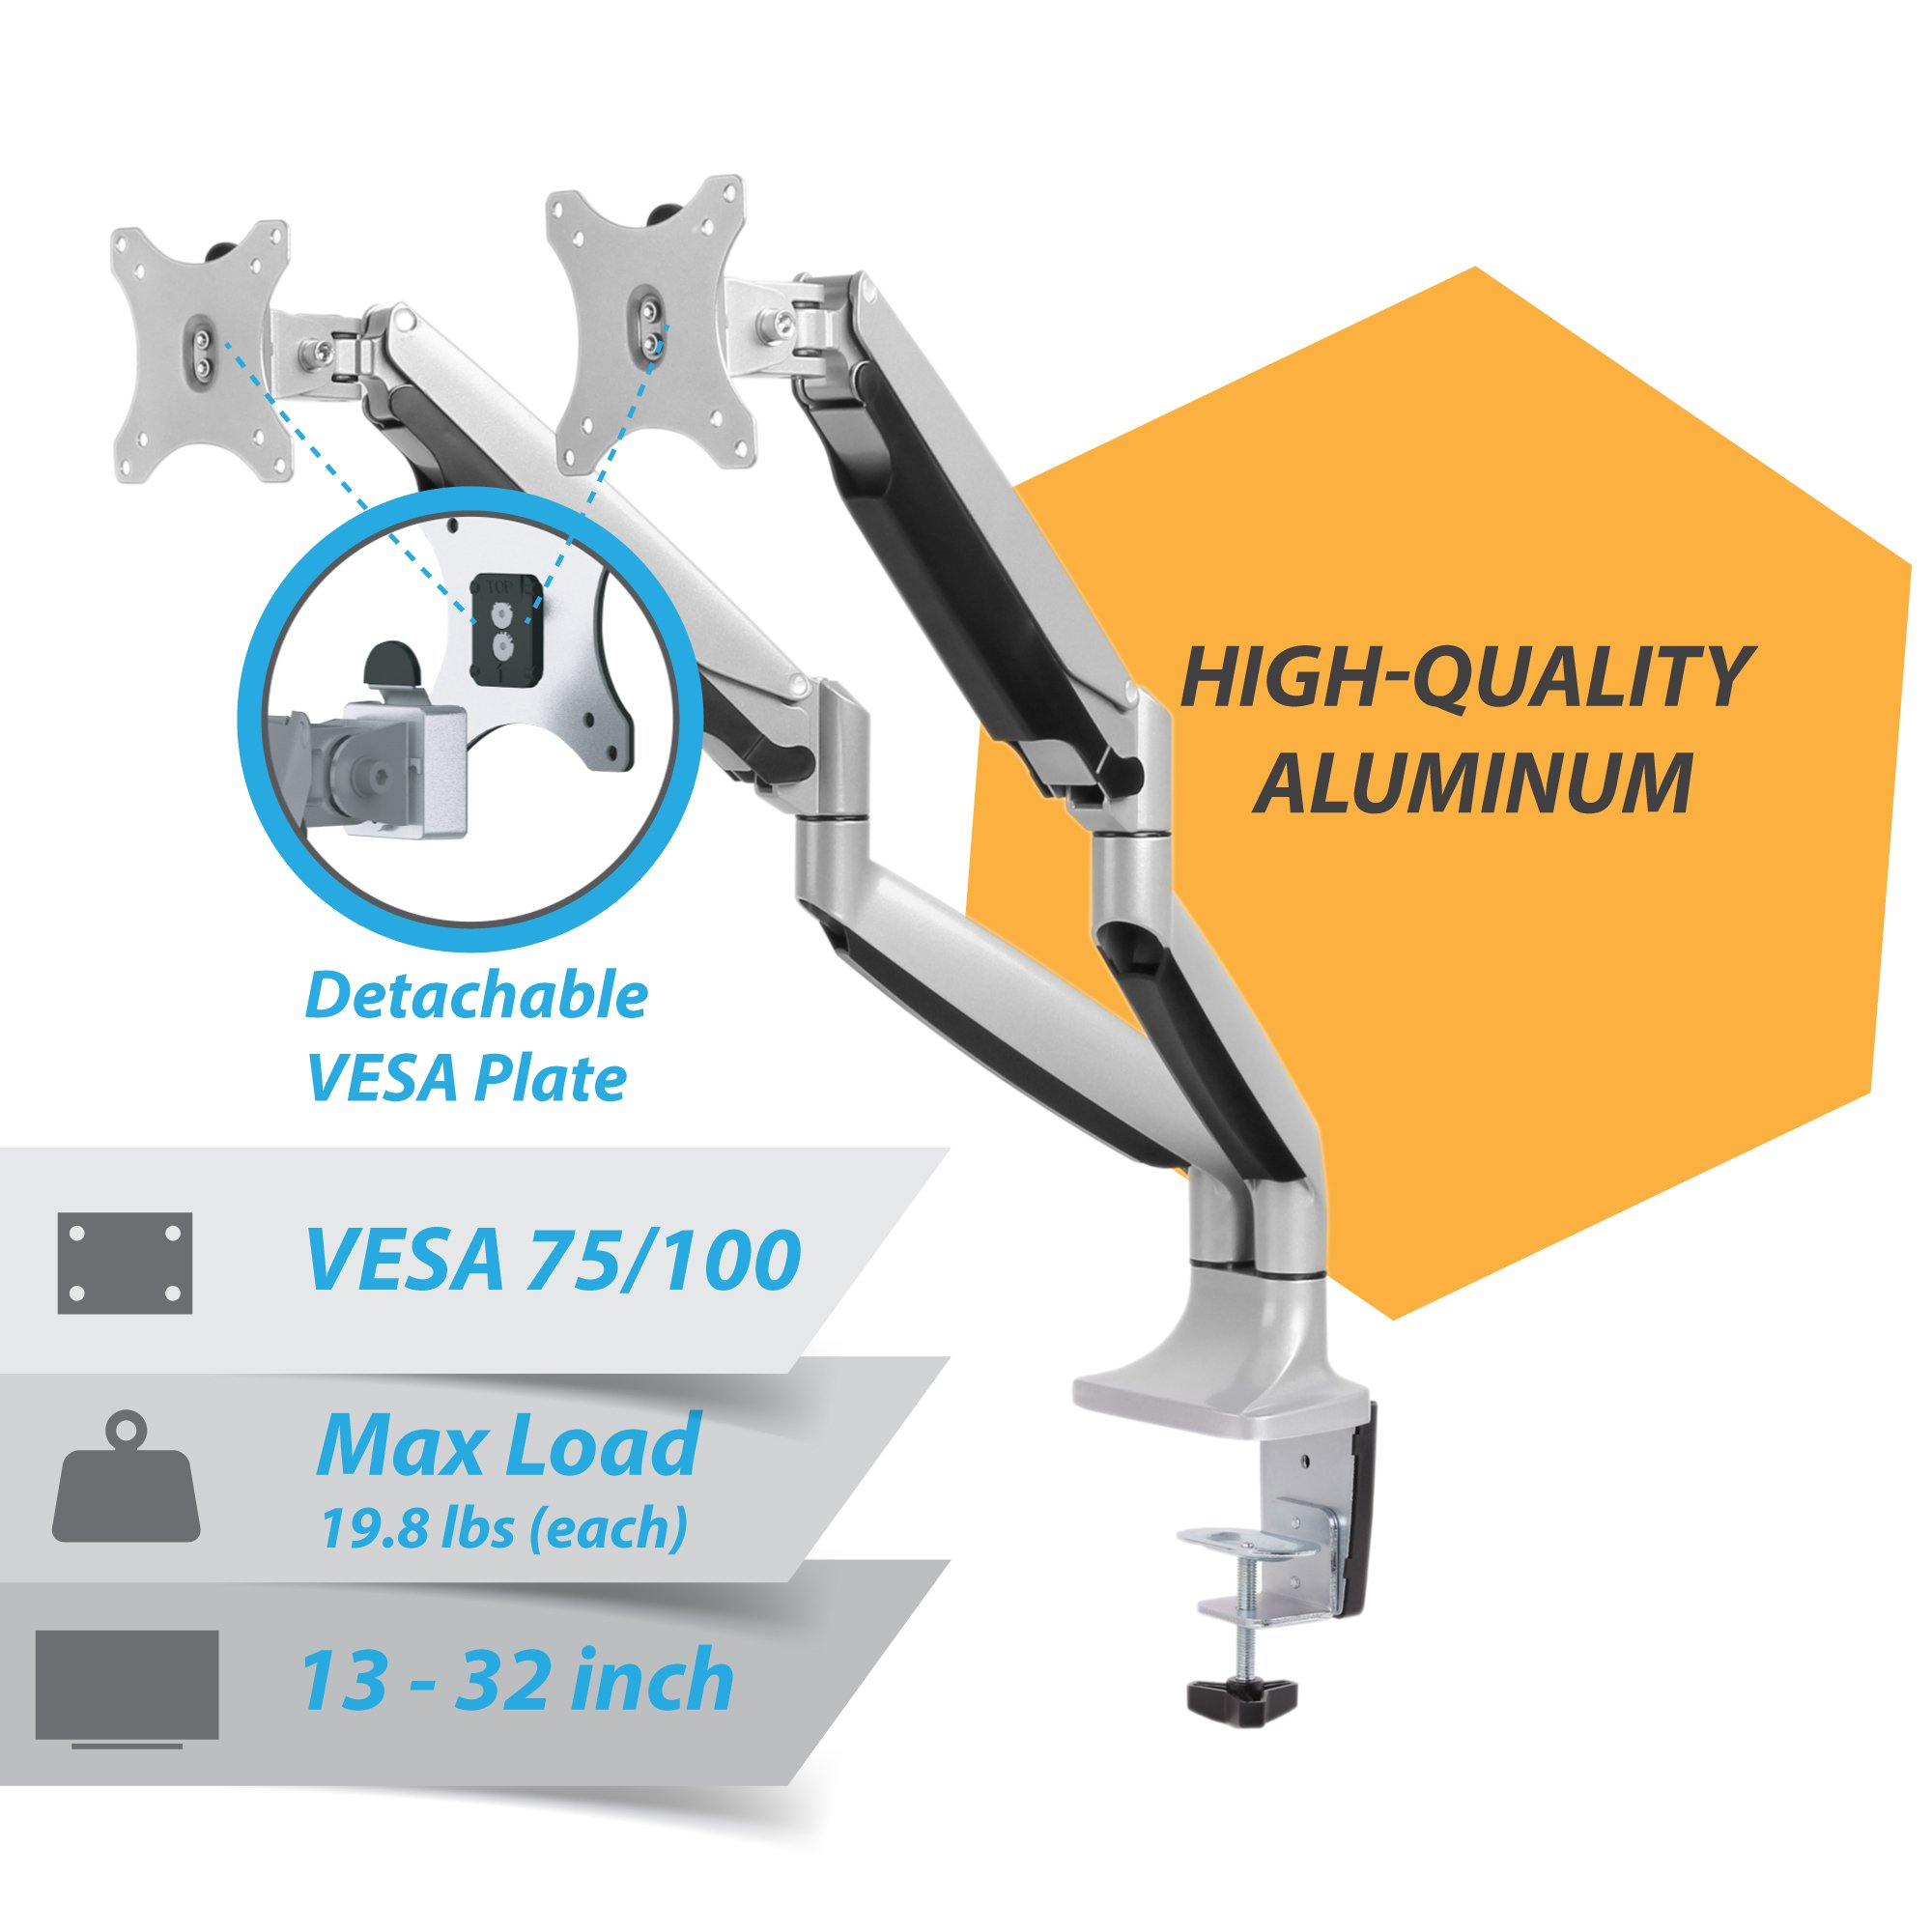 Monitor Mount Arm, AVLT-Power Premium Aluminum Dual Monitor Desk Mount Arm Stand - Gas Spring - Heavy Duty Holds 13'' to 32'' Screens, Up to 19.8 lbs Each, VESA 75x75 or 100x100